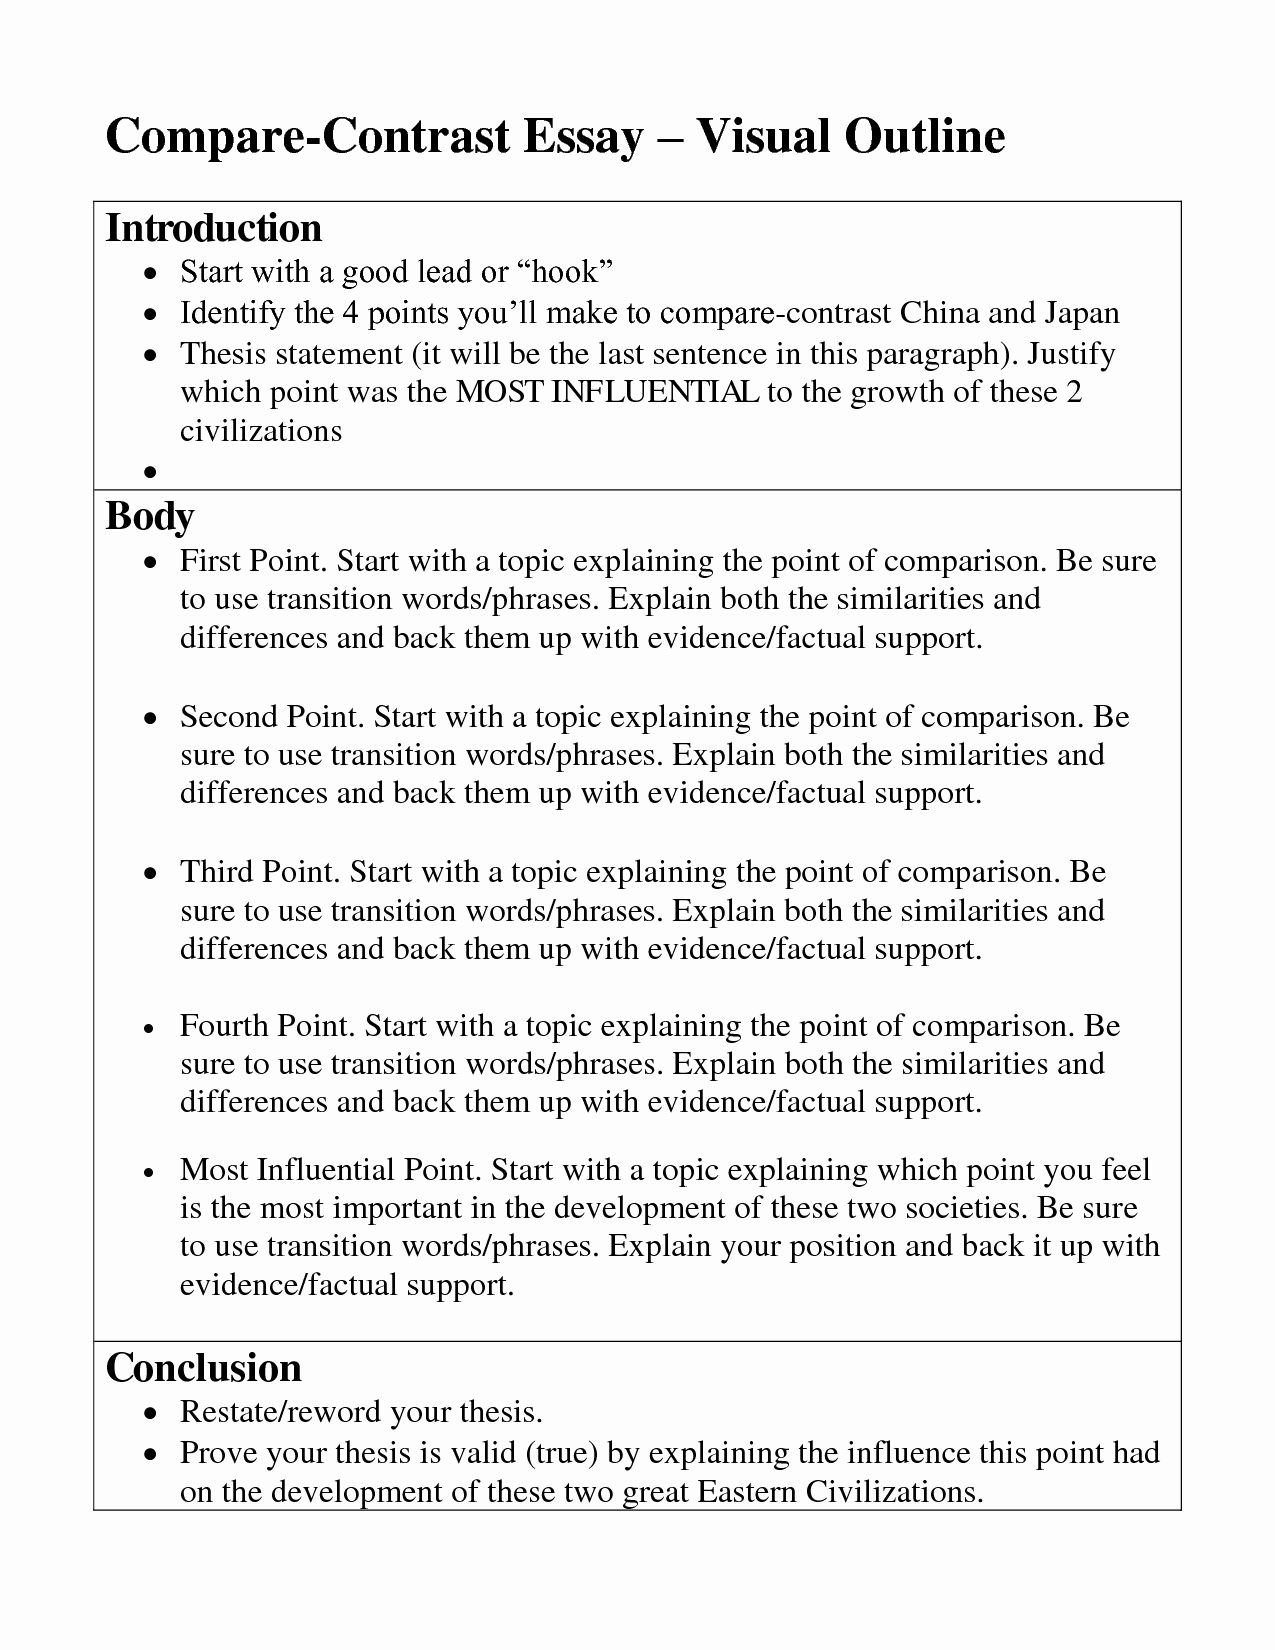 Essay Outline Mla New Pare And Contrast Bamboodownunder Example Expository Compare Structure